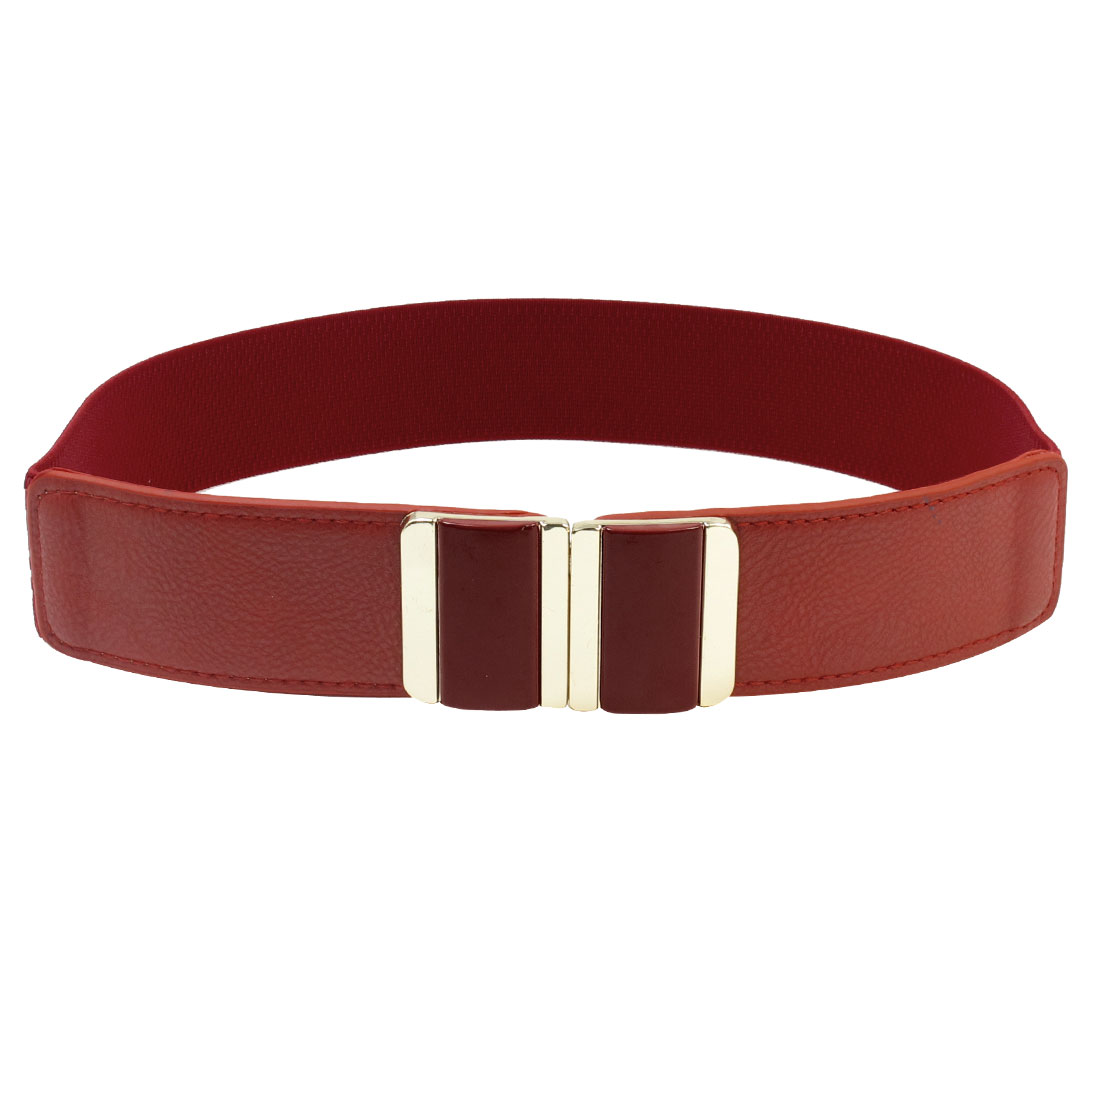 Lady Faux Leather Double Retangle Interlocking Buckle Waist Band Belt Red